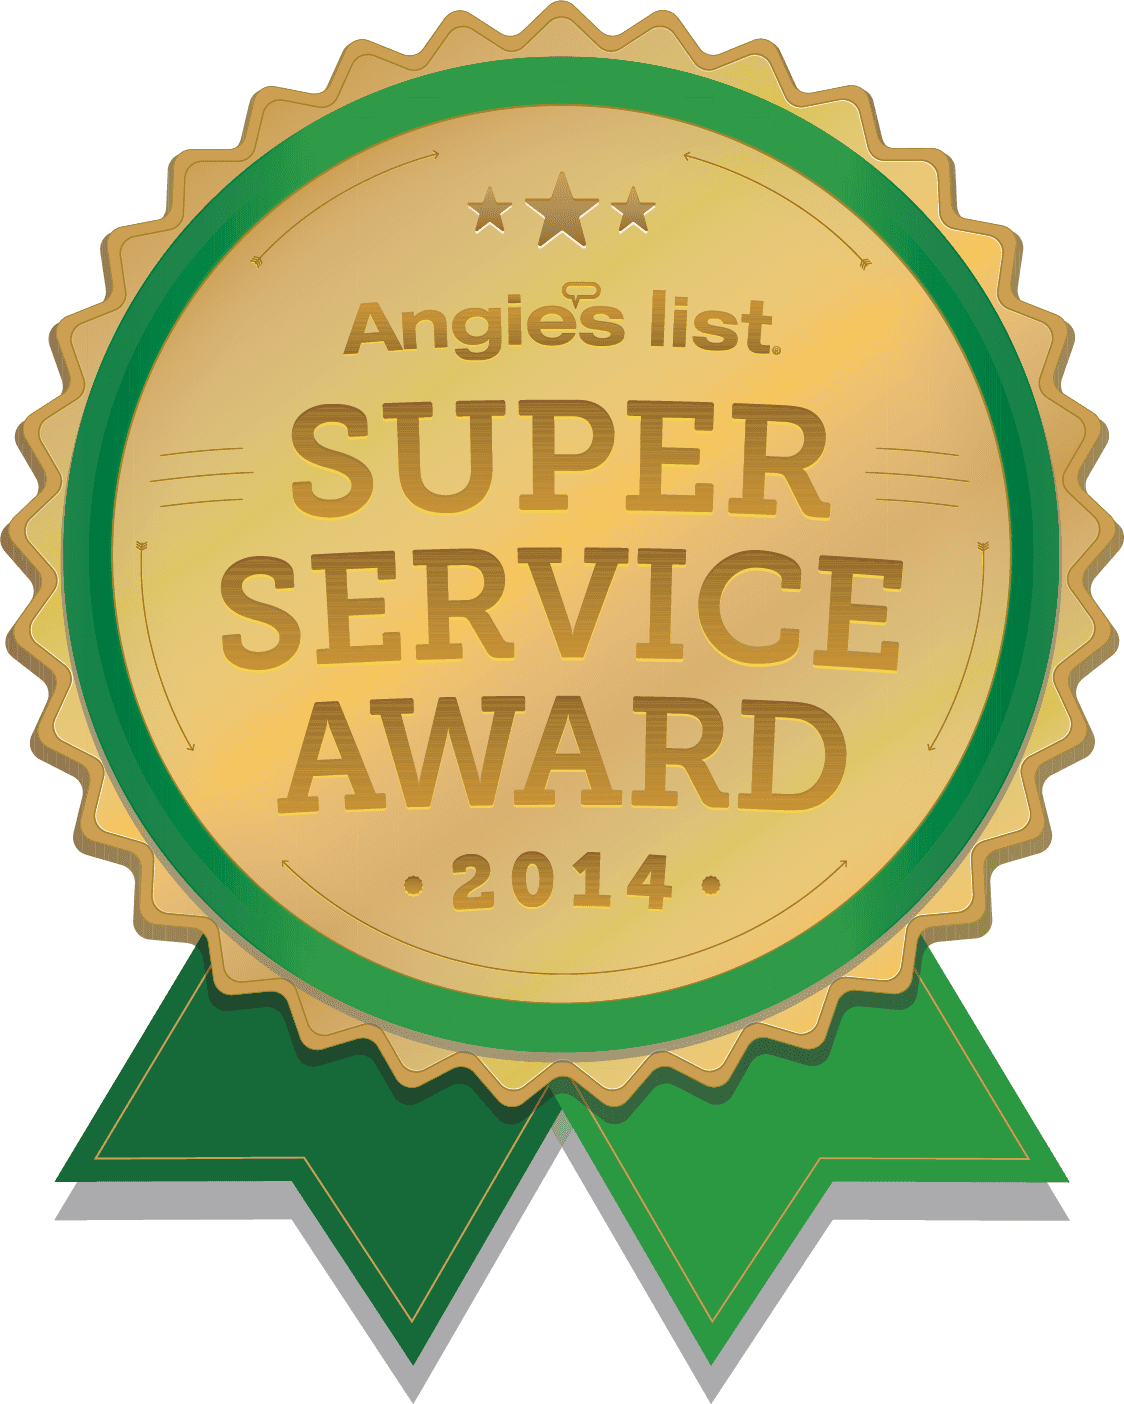 Angie's List Super Service Award for 2014